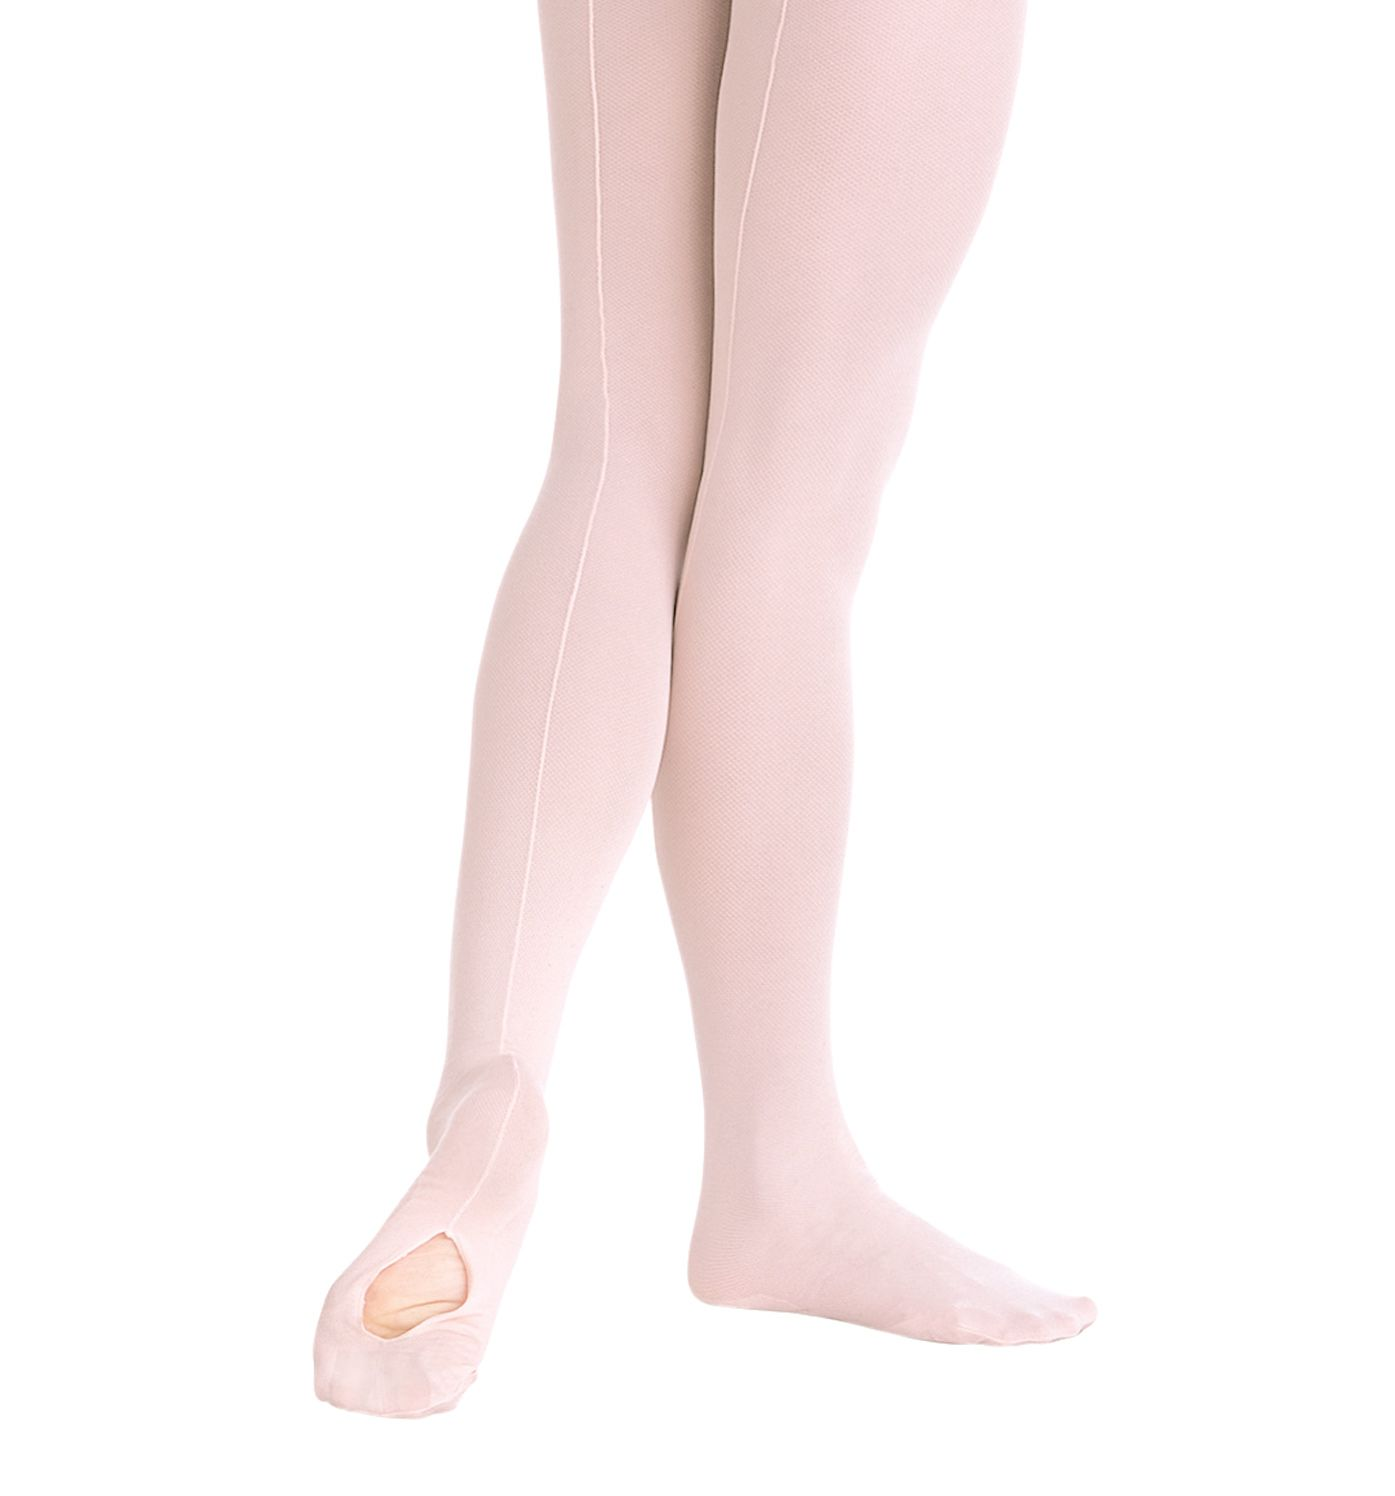 b934bd48b143a Adult TotalSTRETCH Mesh Seamed Convertible Tights | fabric and ...